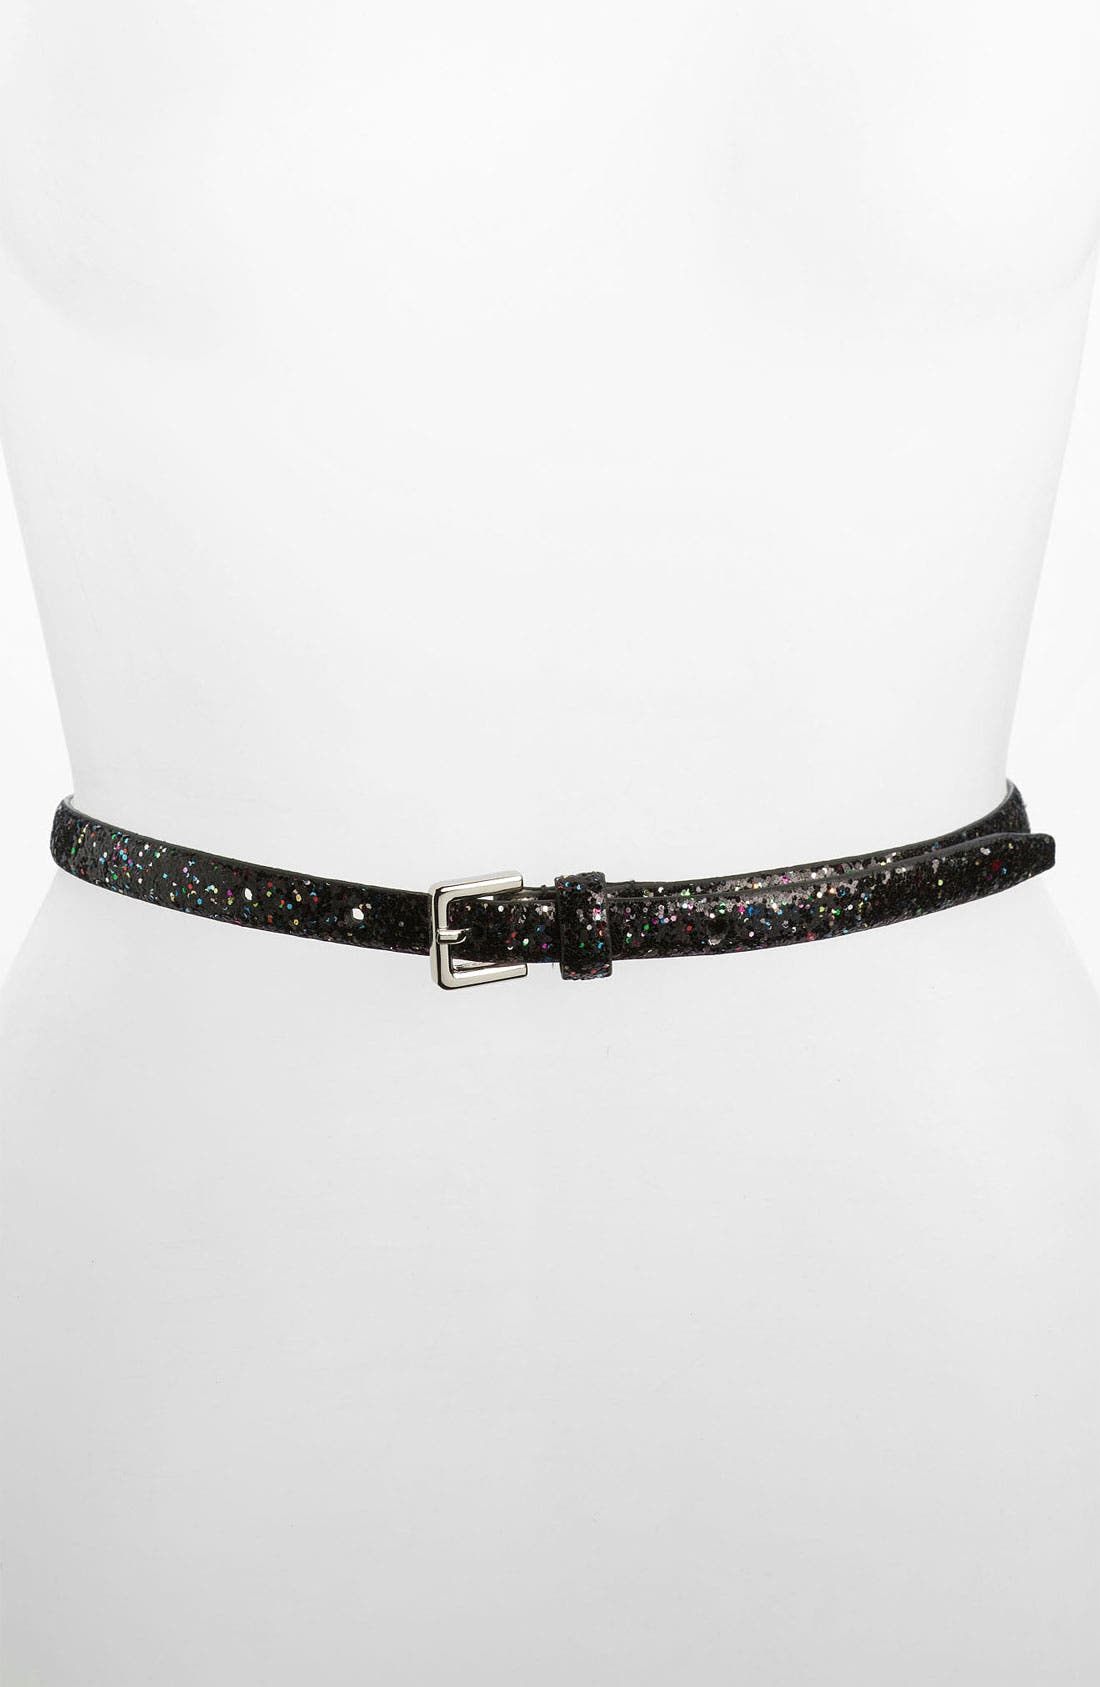 Alternate Image 2  - Steven by Steve Madden 'Glitter to Stud' Belts (2-Pack)